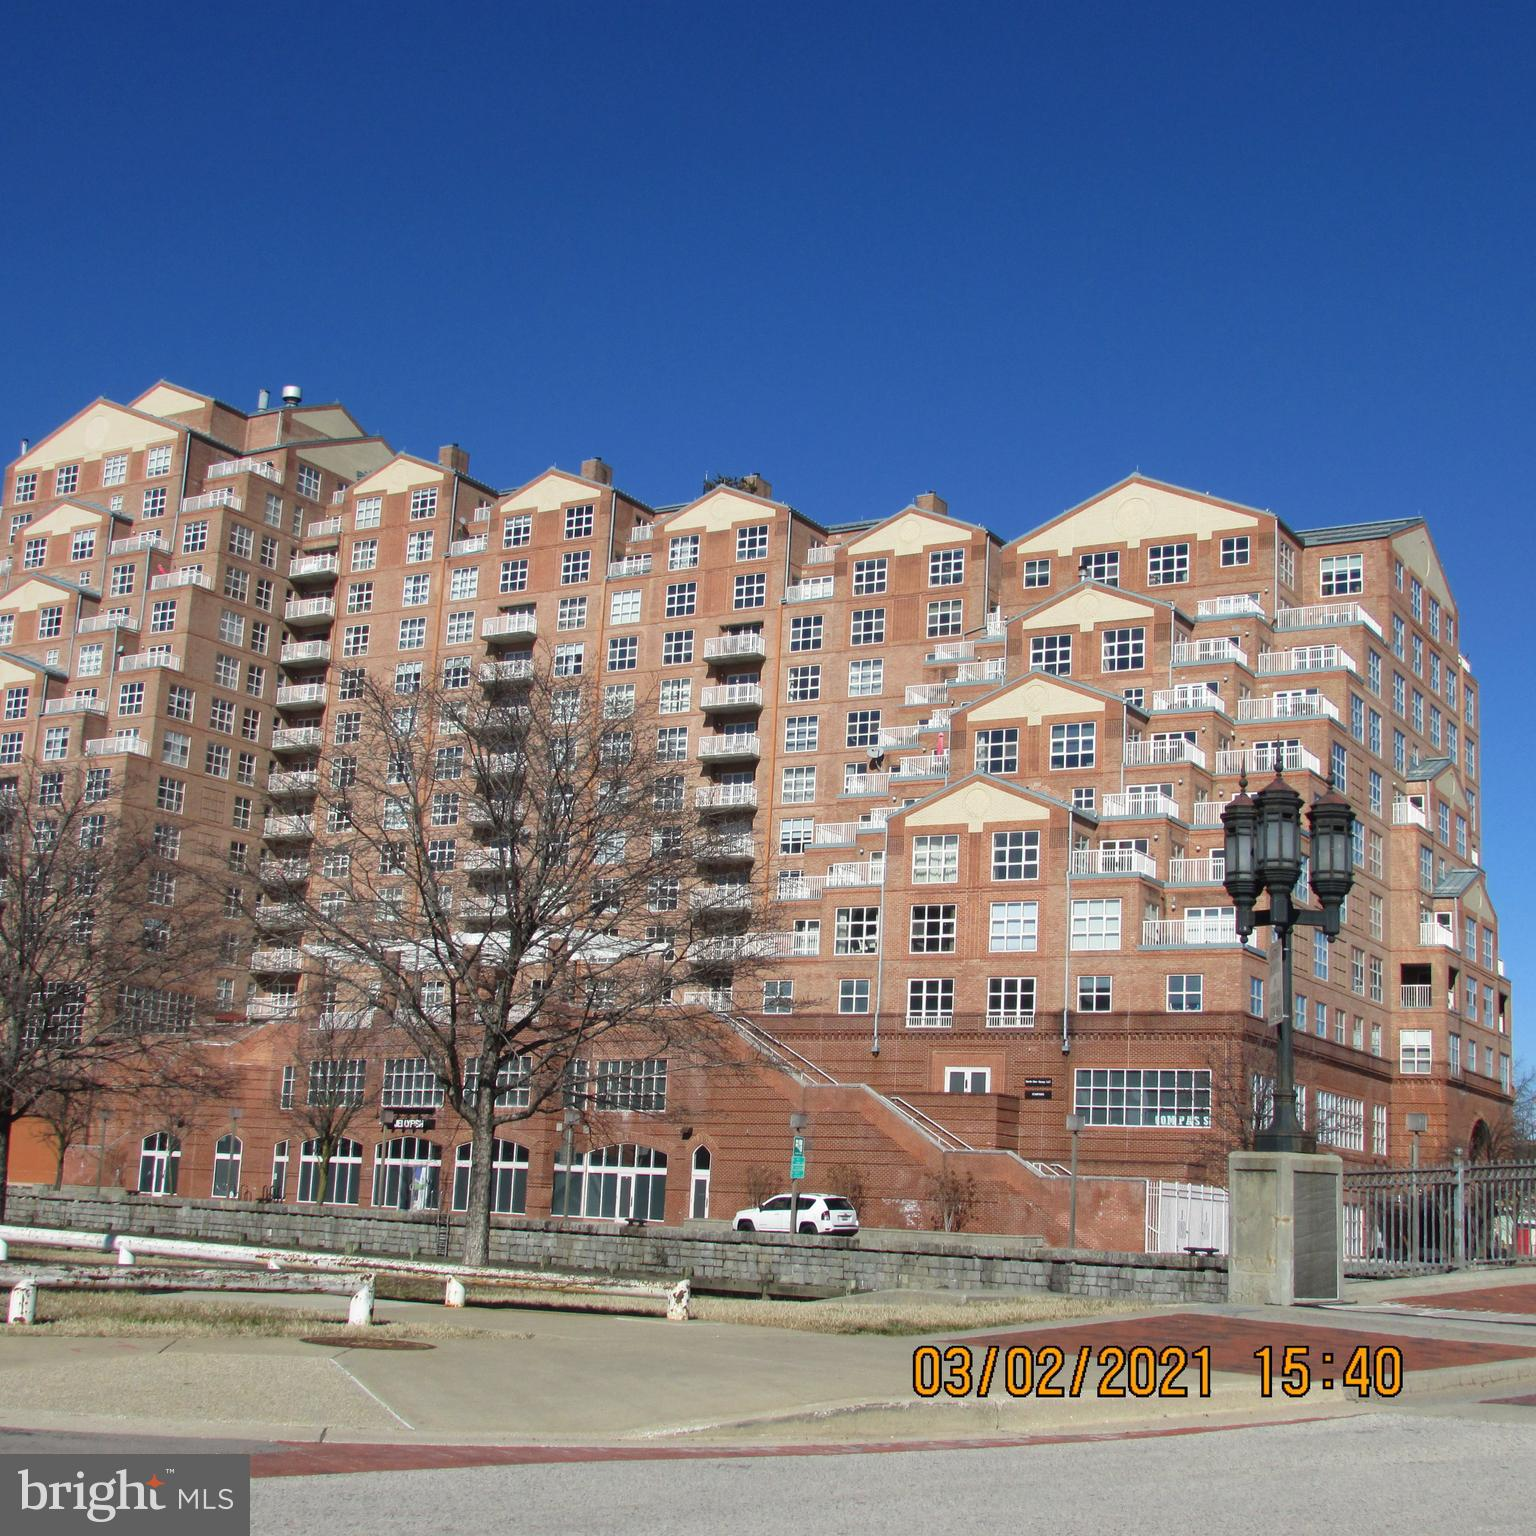 Occupied  2 bedroom 2 bathroom condo unit with views of the Harbor. There are no  appointments  and all offers will need to be based on a drive by and all available information. Do not disturb occupants  or attempt to access unit.